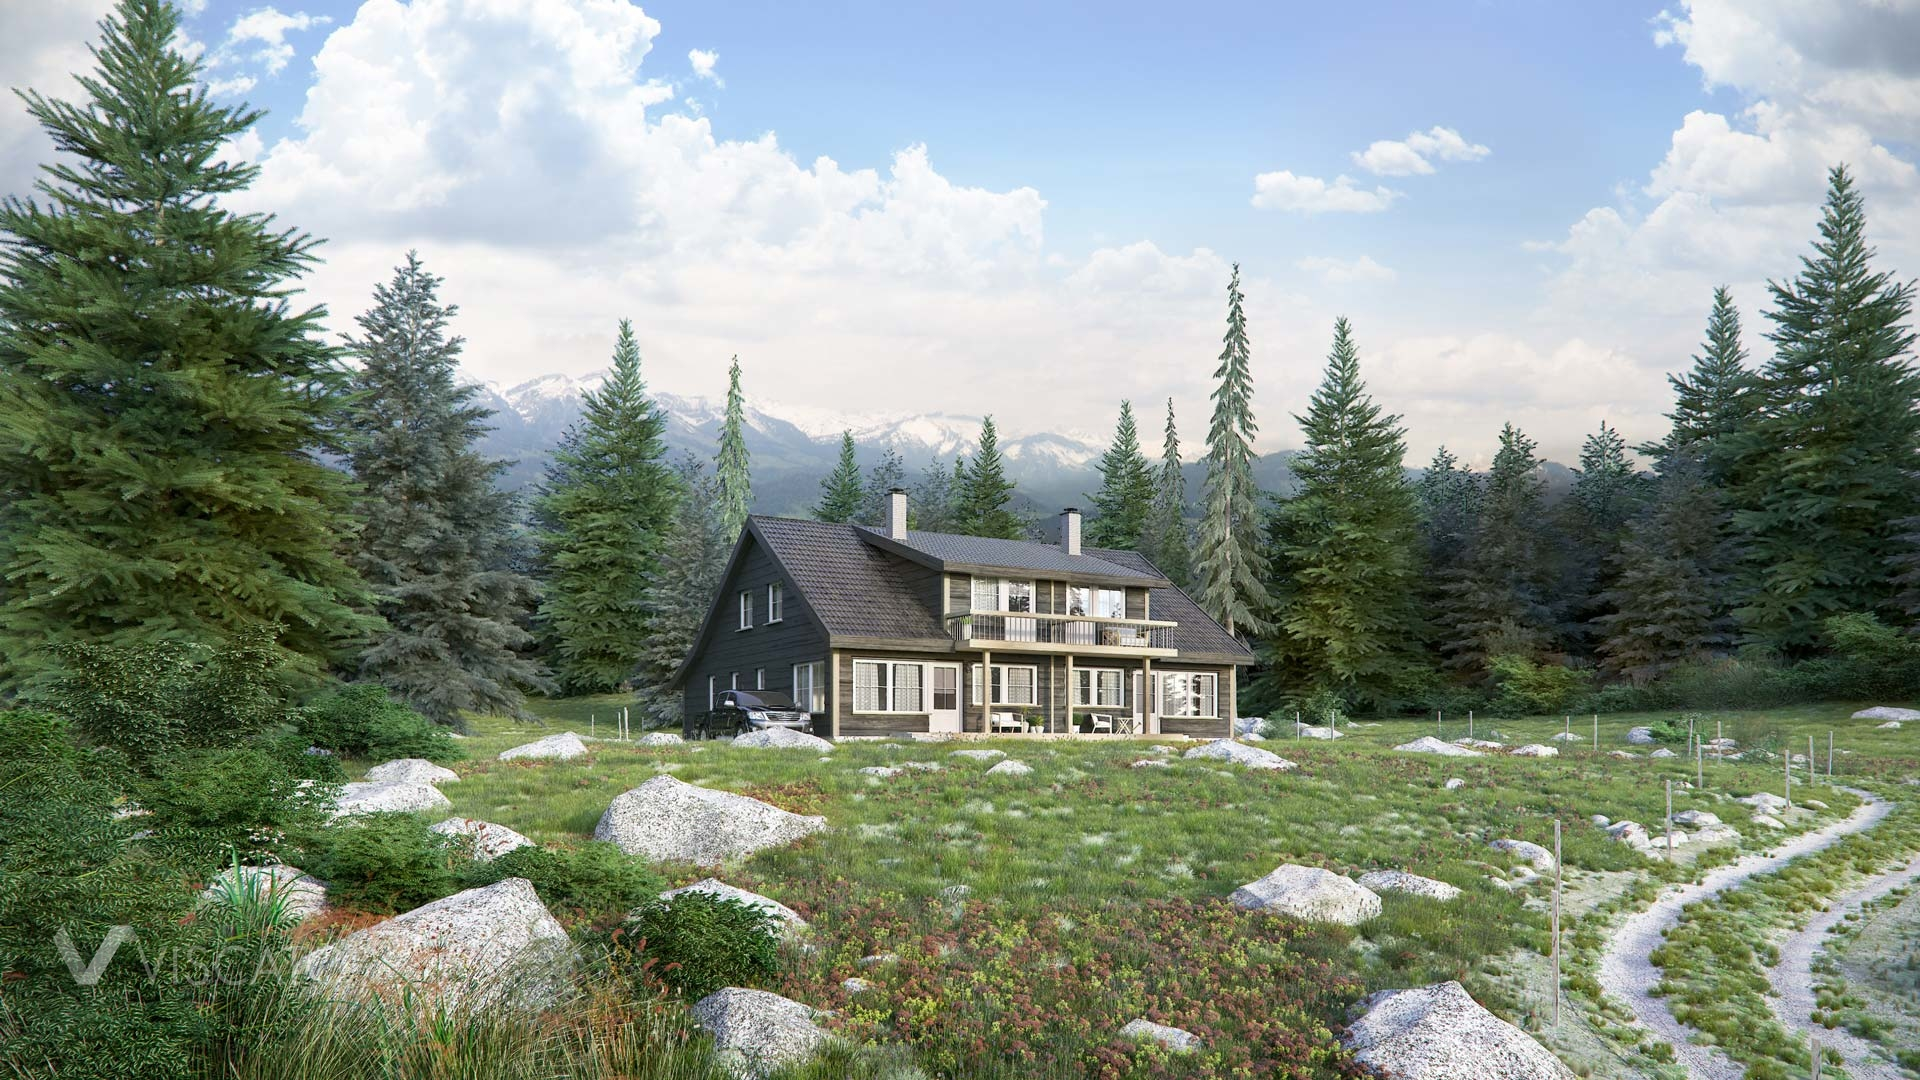 3d visualization of a cottage with wood paneling, landscape view